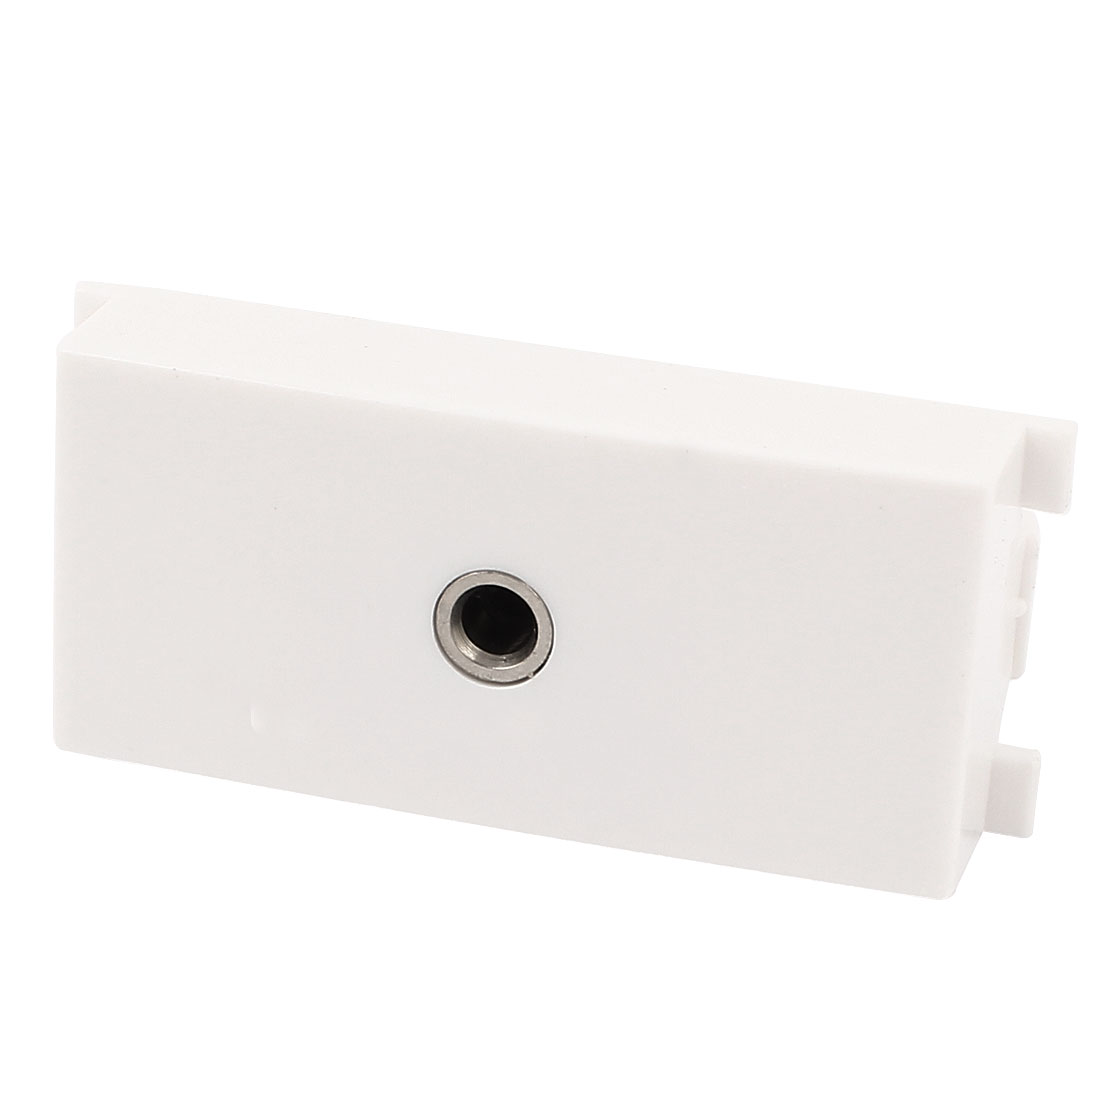 3.5mm Audio Screw Terminal Socket Female Jack Module Wall Panel Plate White